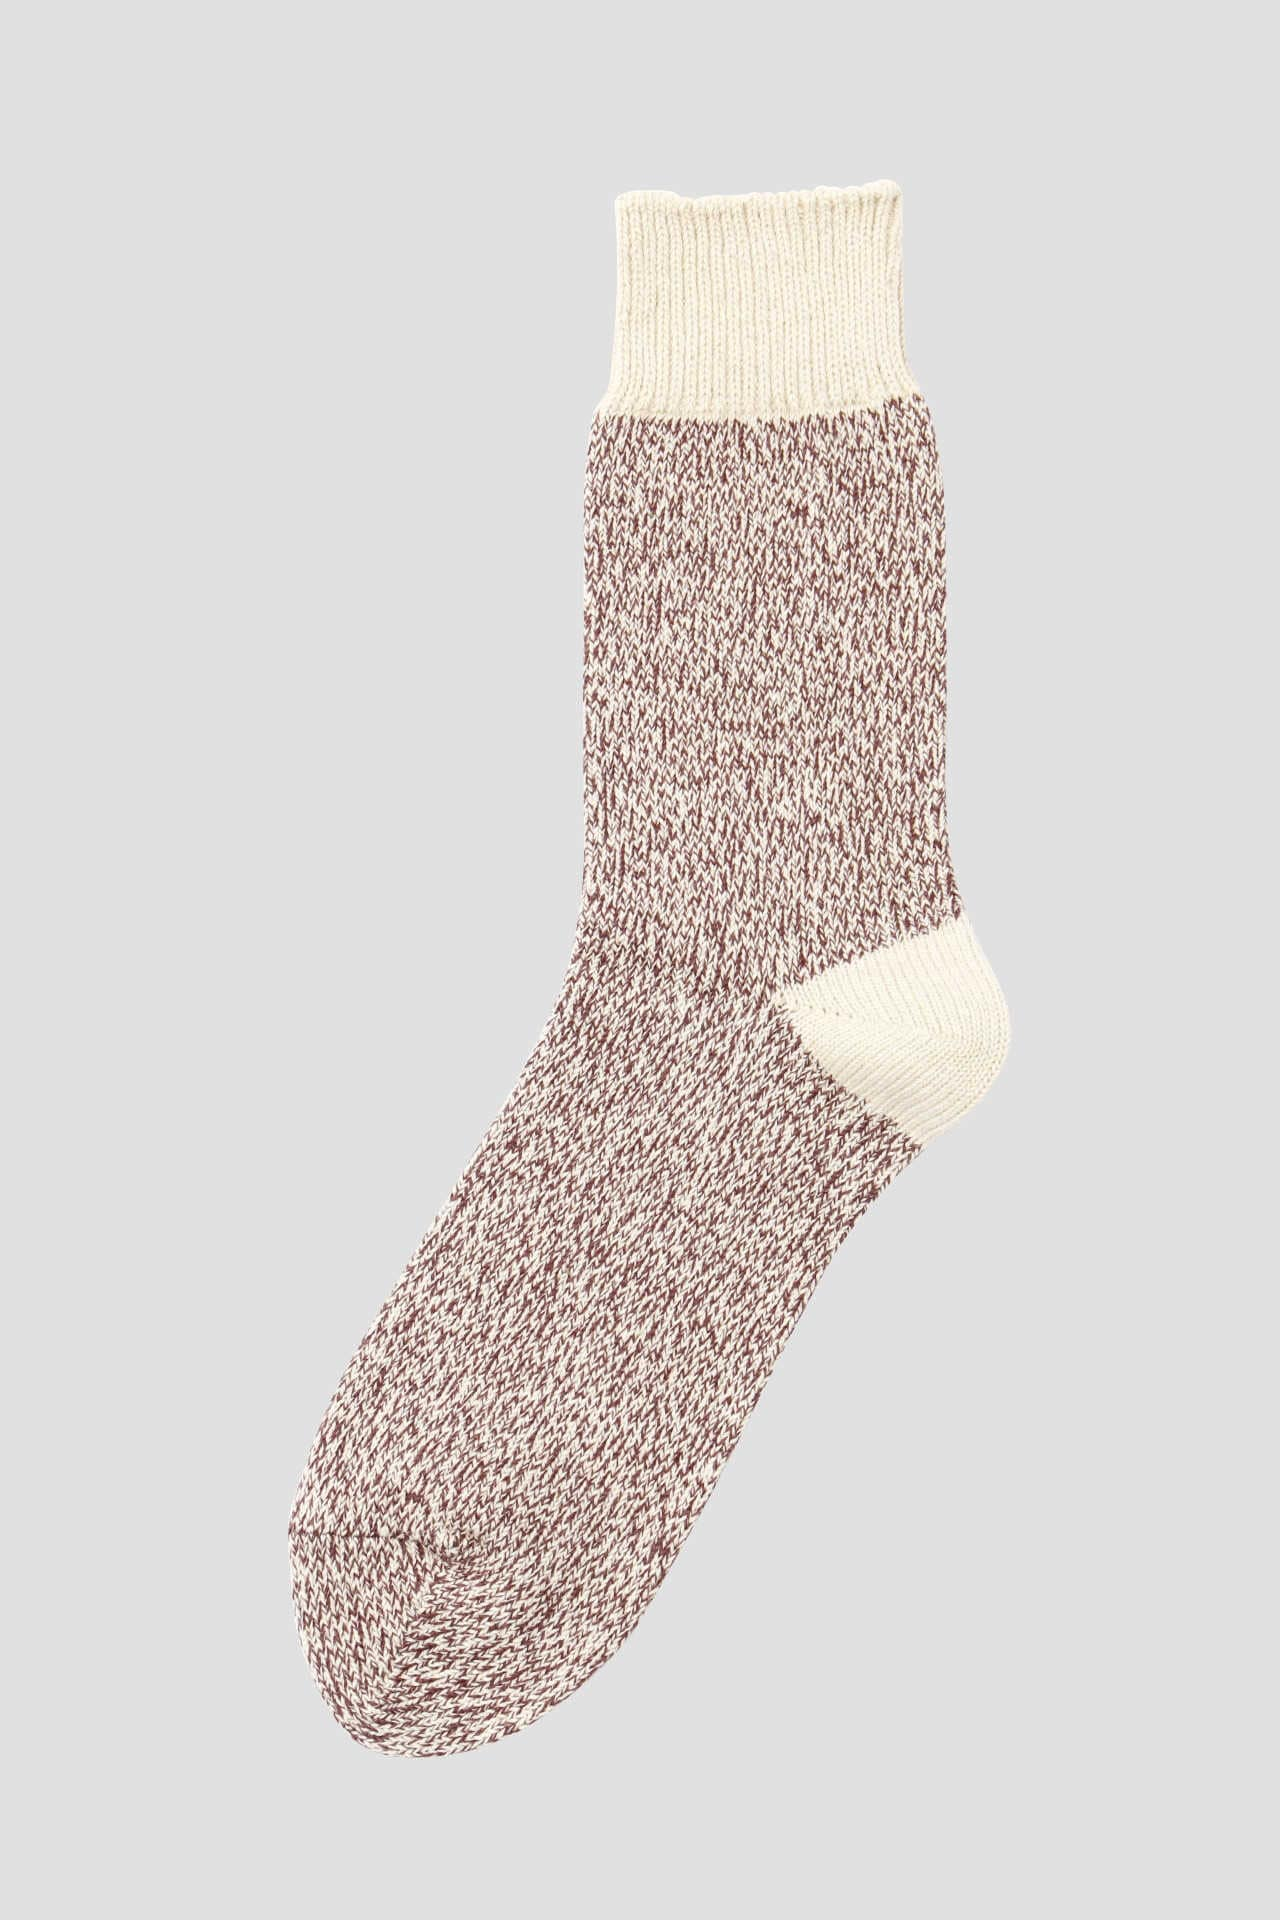 MELANGE COTTON LINEN SOCK7